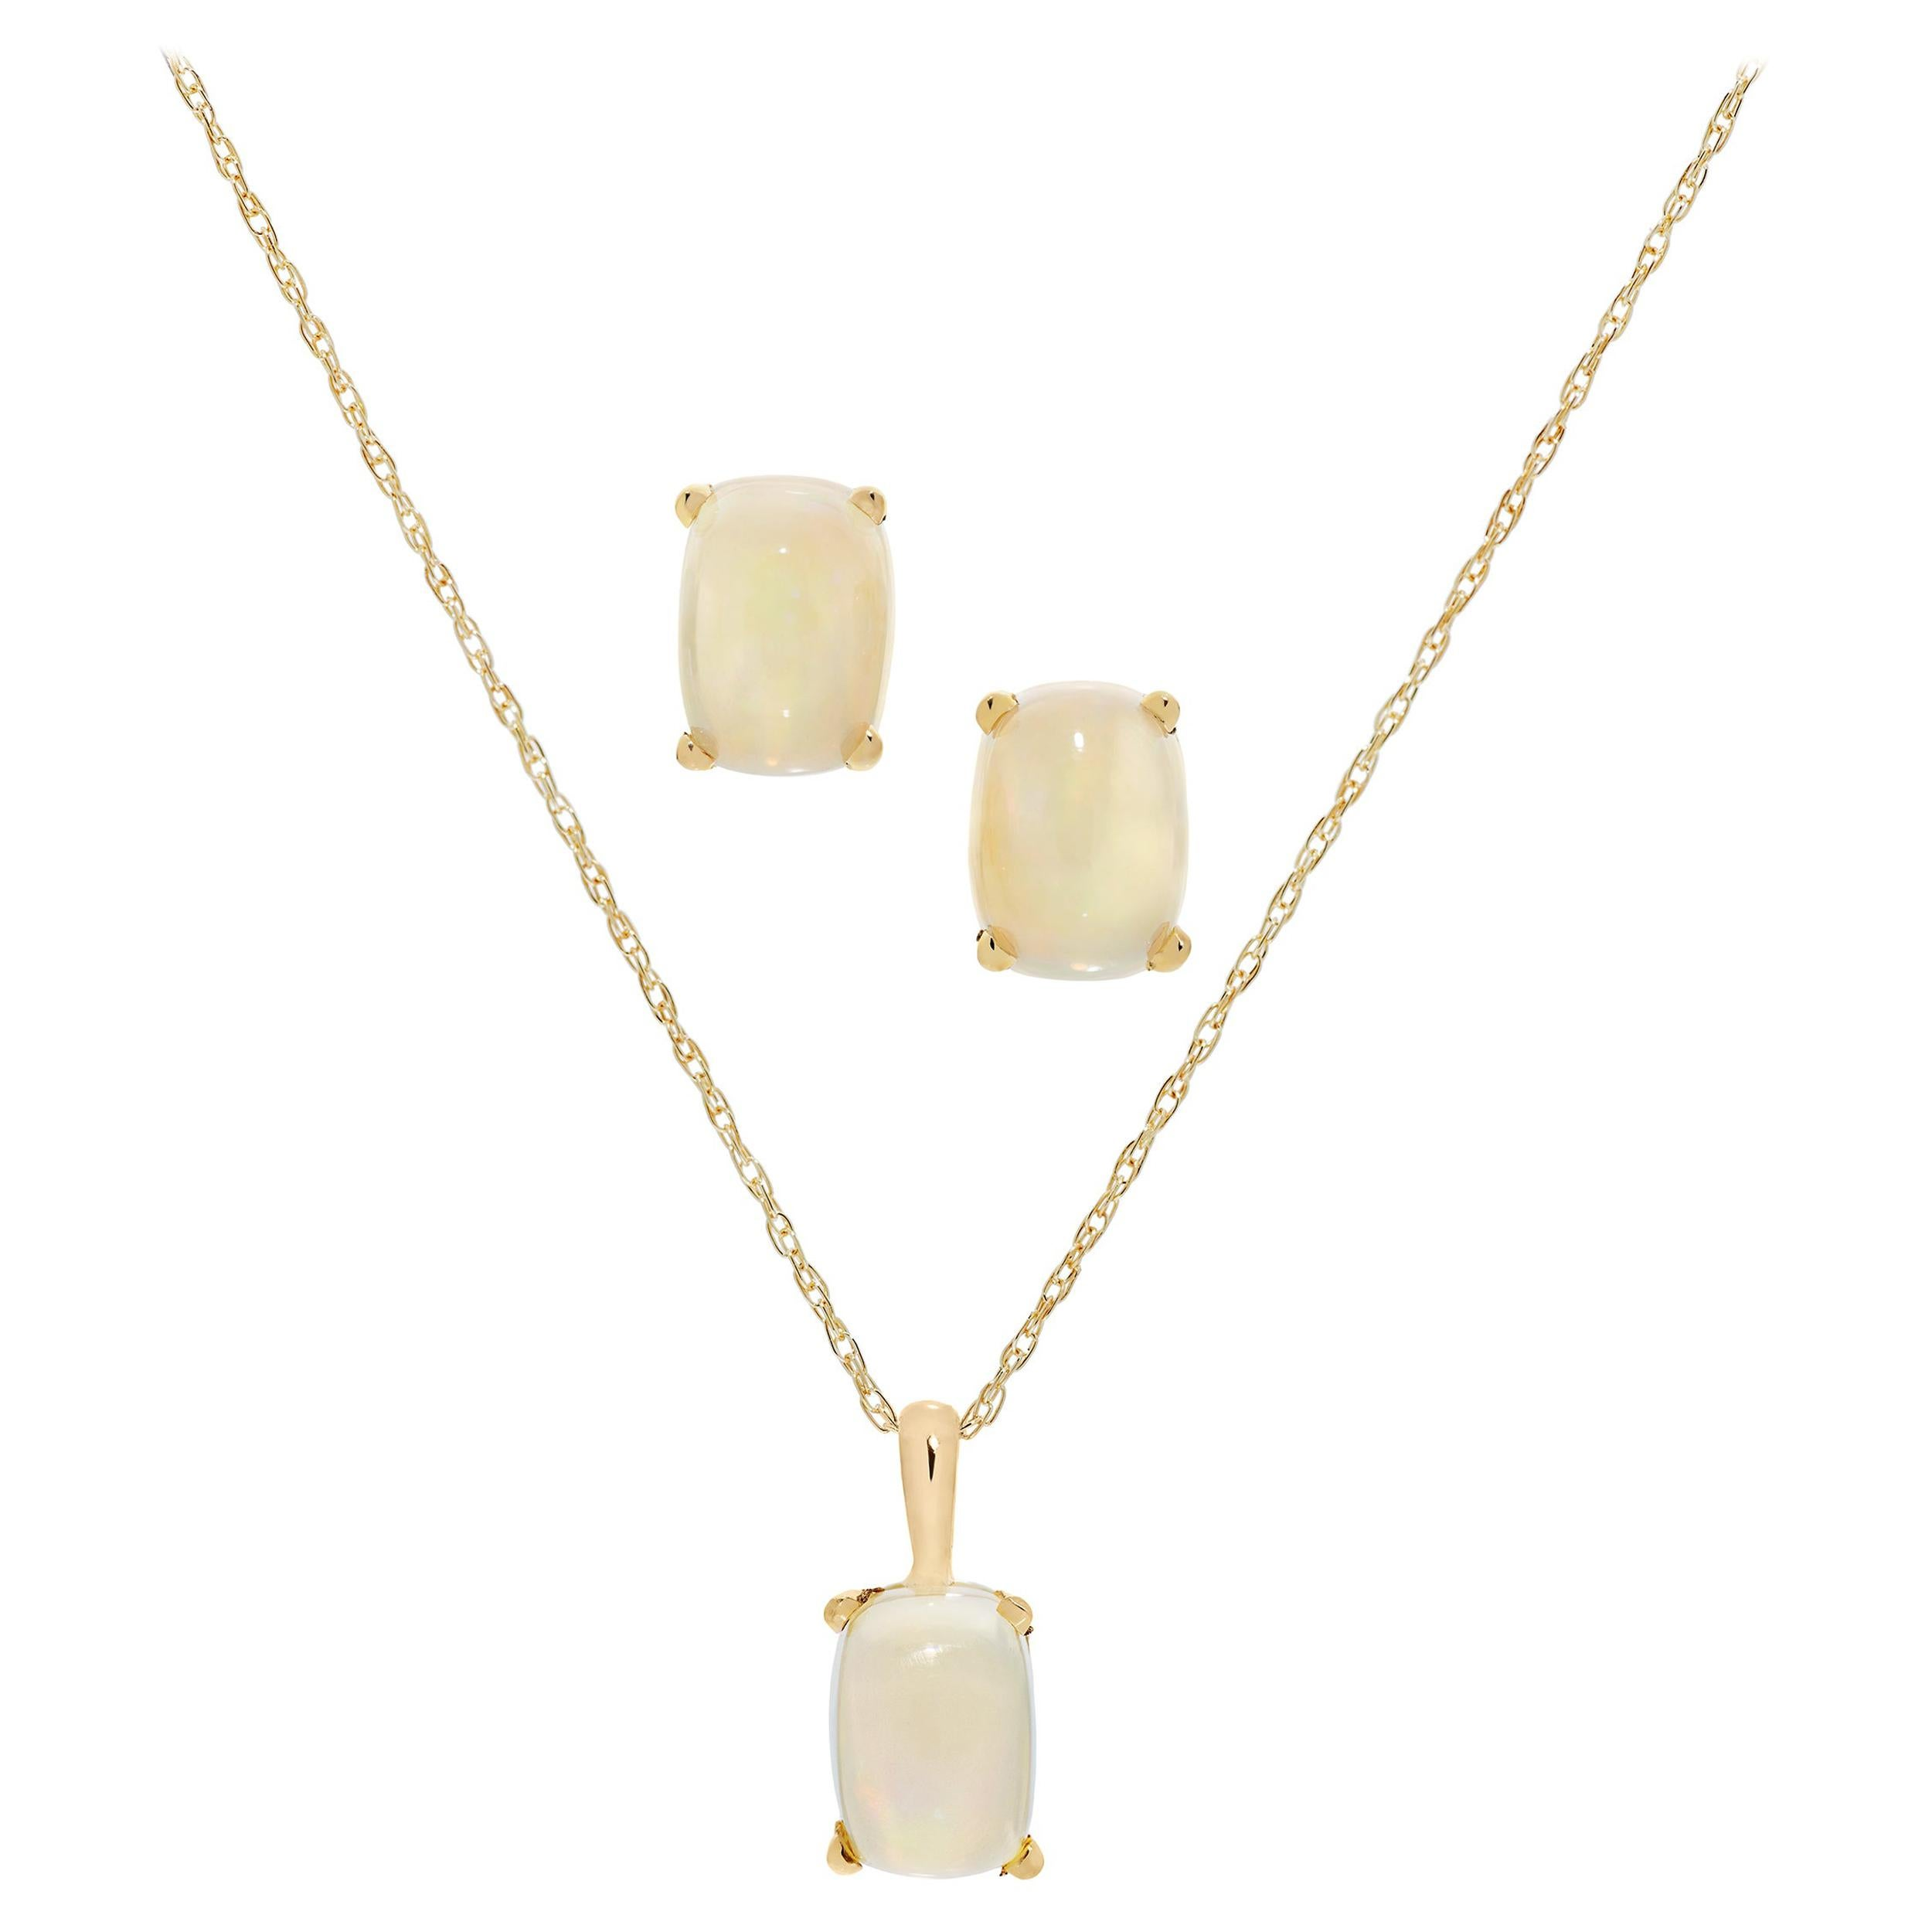 2.35 Carats Cushion Cut Opal Necklace and Earring Set in 18 Karat Yellow Gold